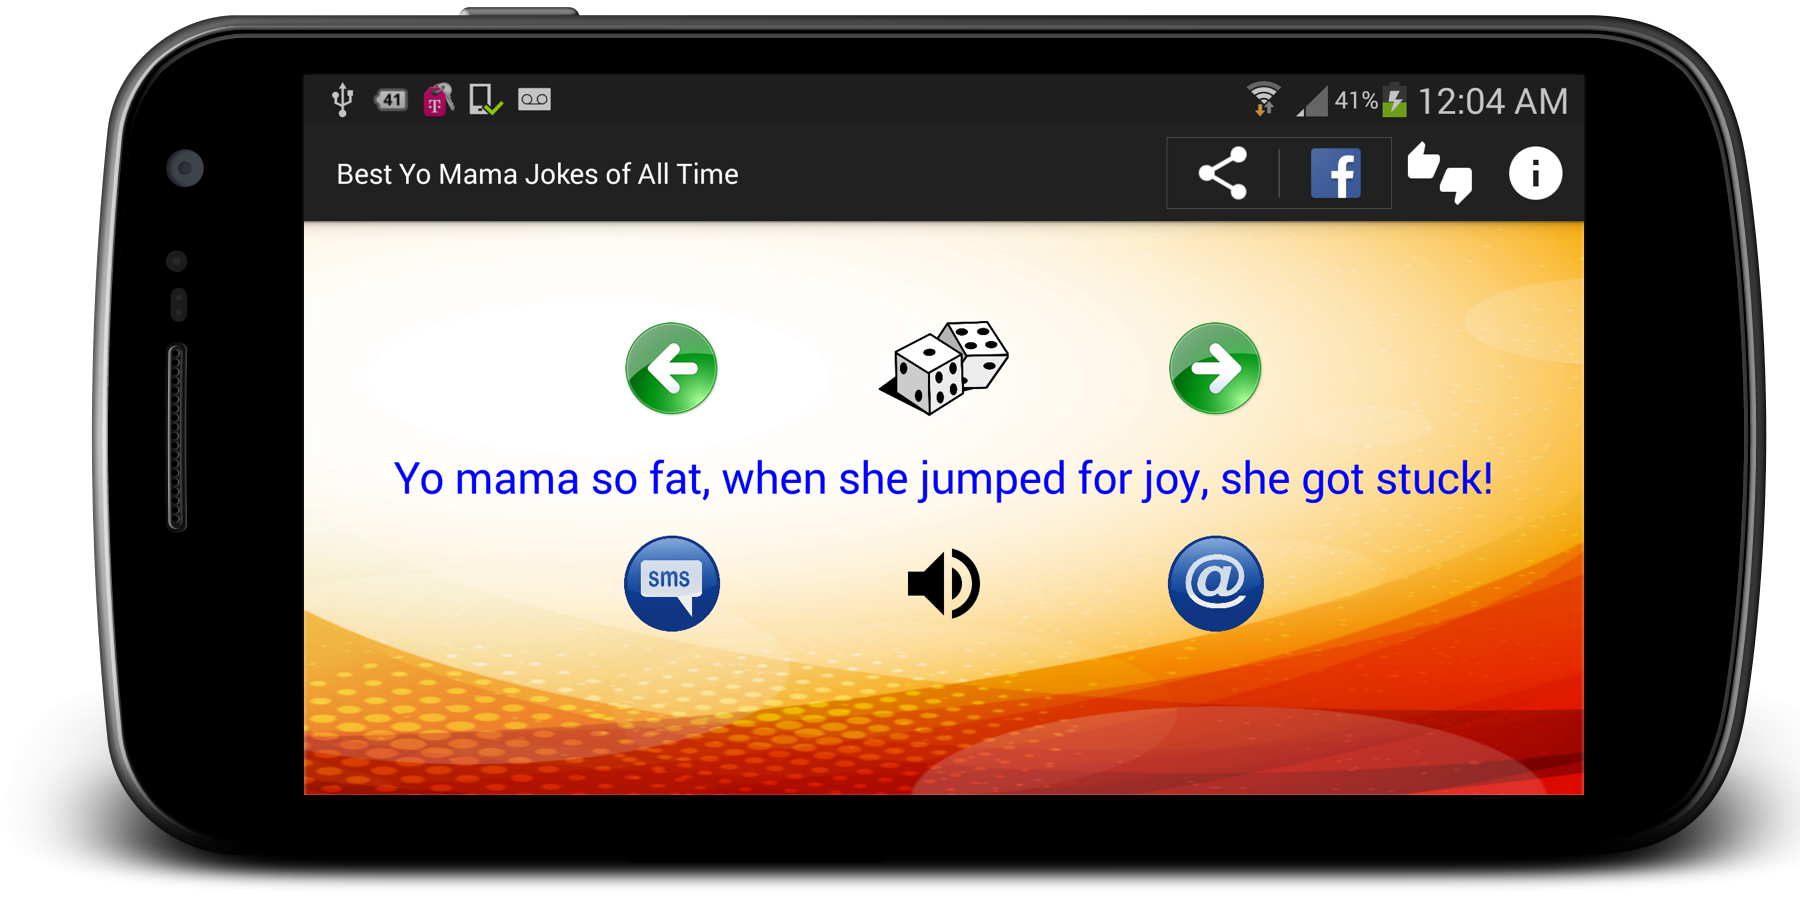 Screenshots of Best Yo Mama Jokes of All Time for iPhone